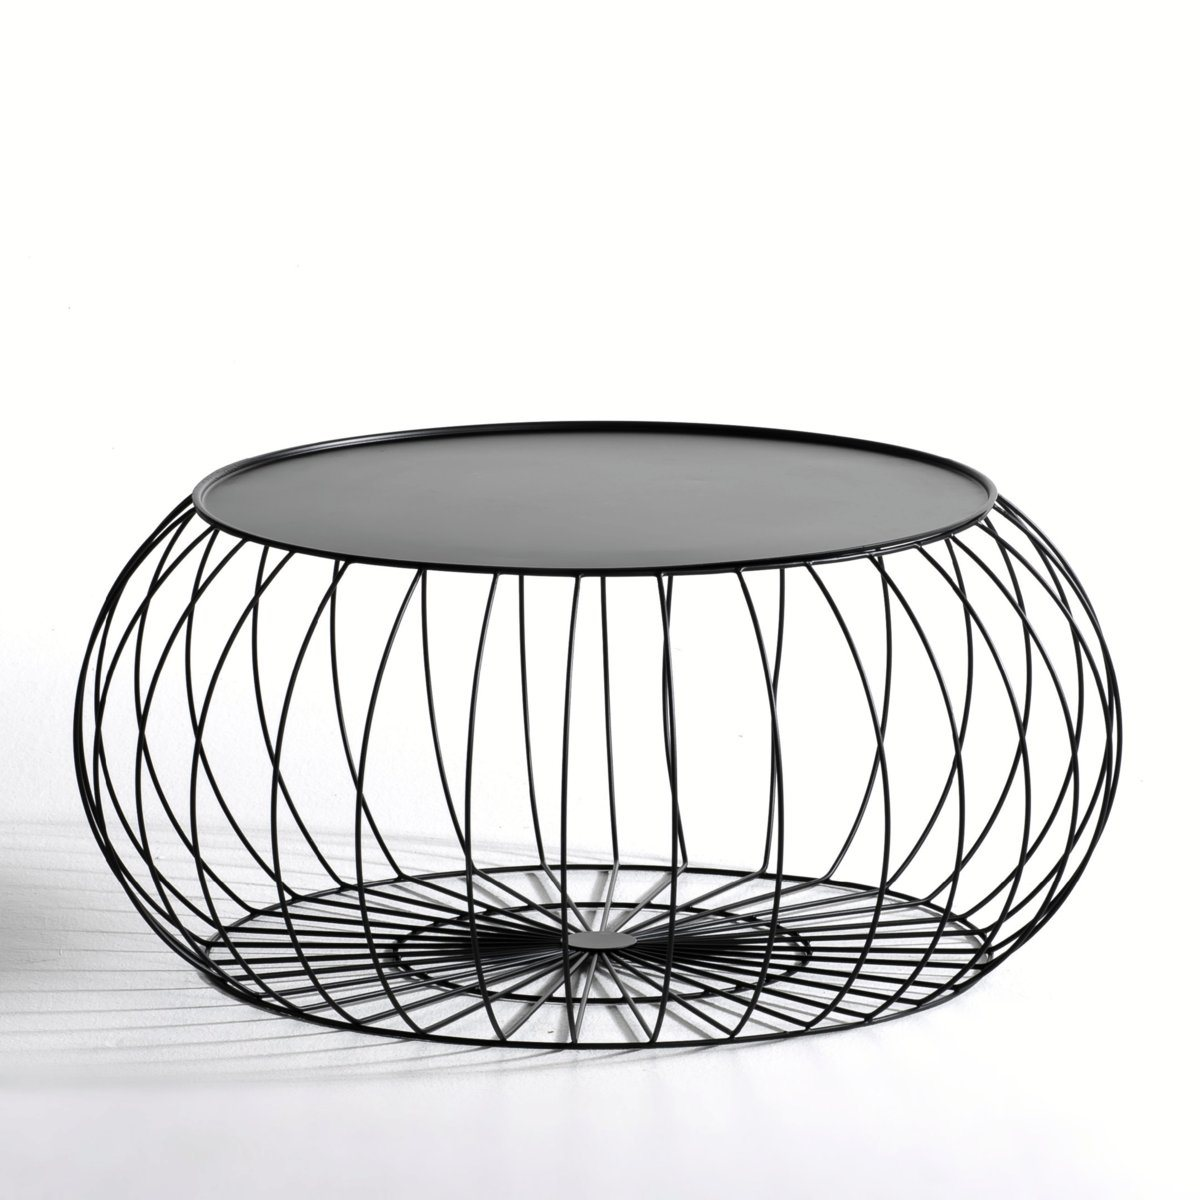 table basse am pm table basse cage fil m tal am pm prix 259 00 euros ventes pas. Black Bedroom Furniture Sets. Home Design Ideas